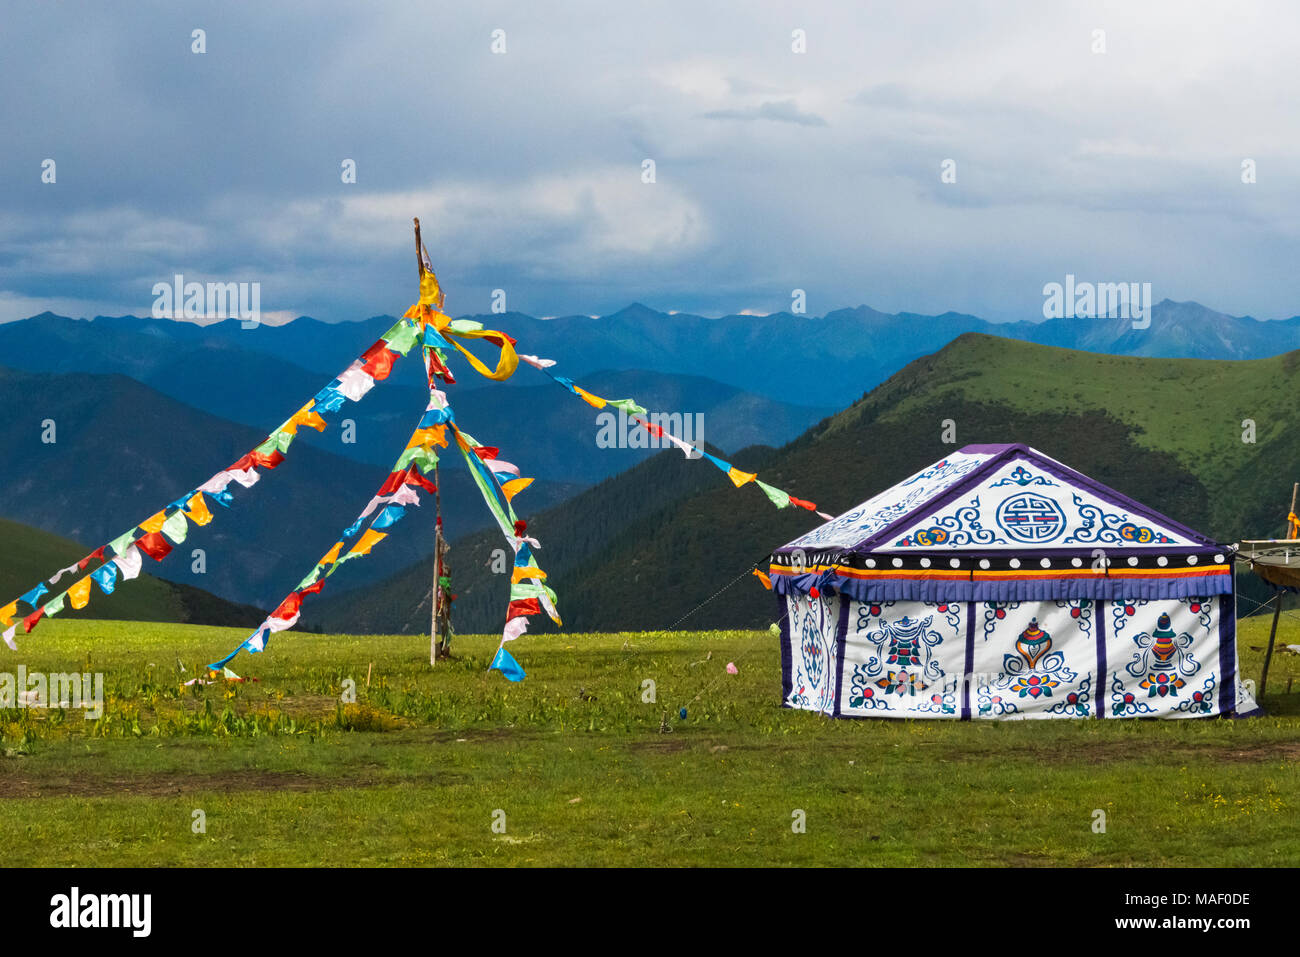 Tibetan yurts on the meadow, Litang, western Sichuan, China - Stock Image